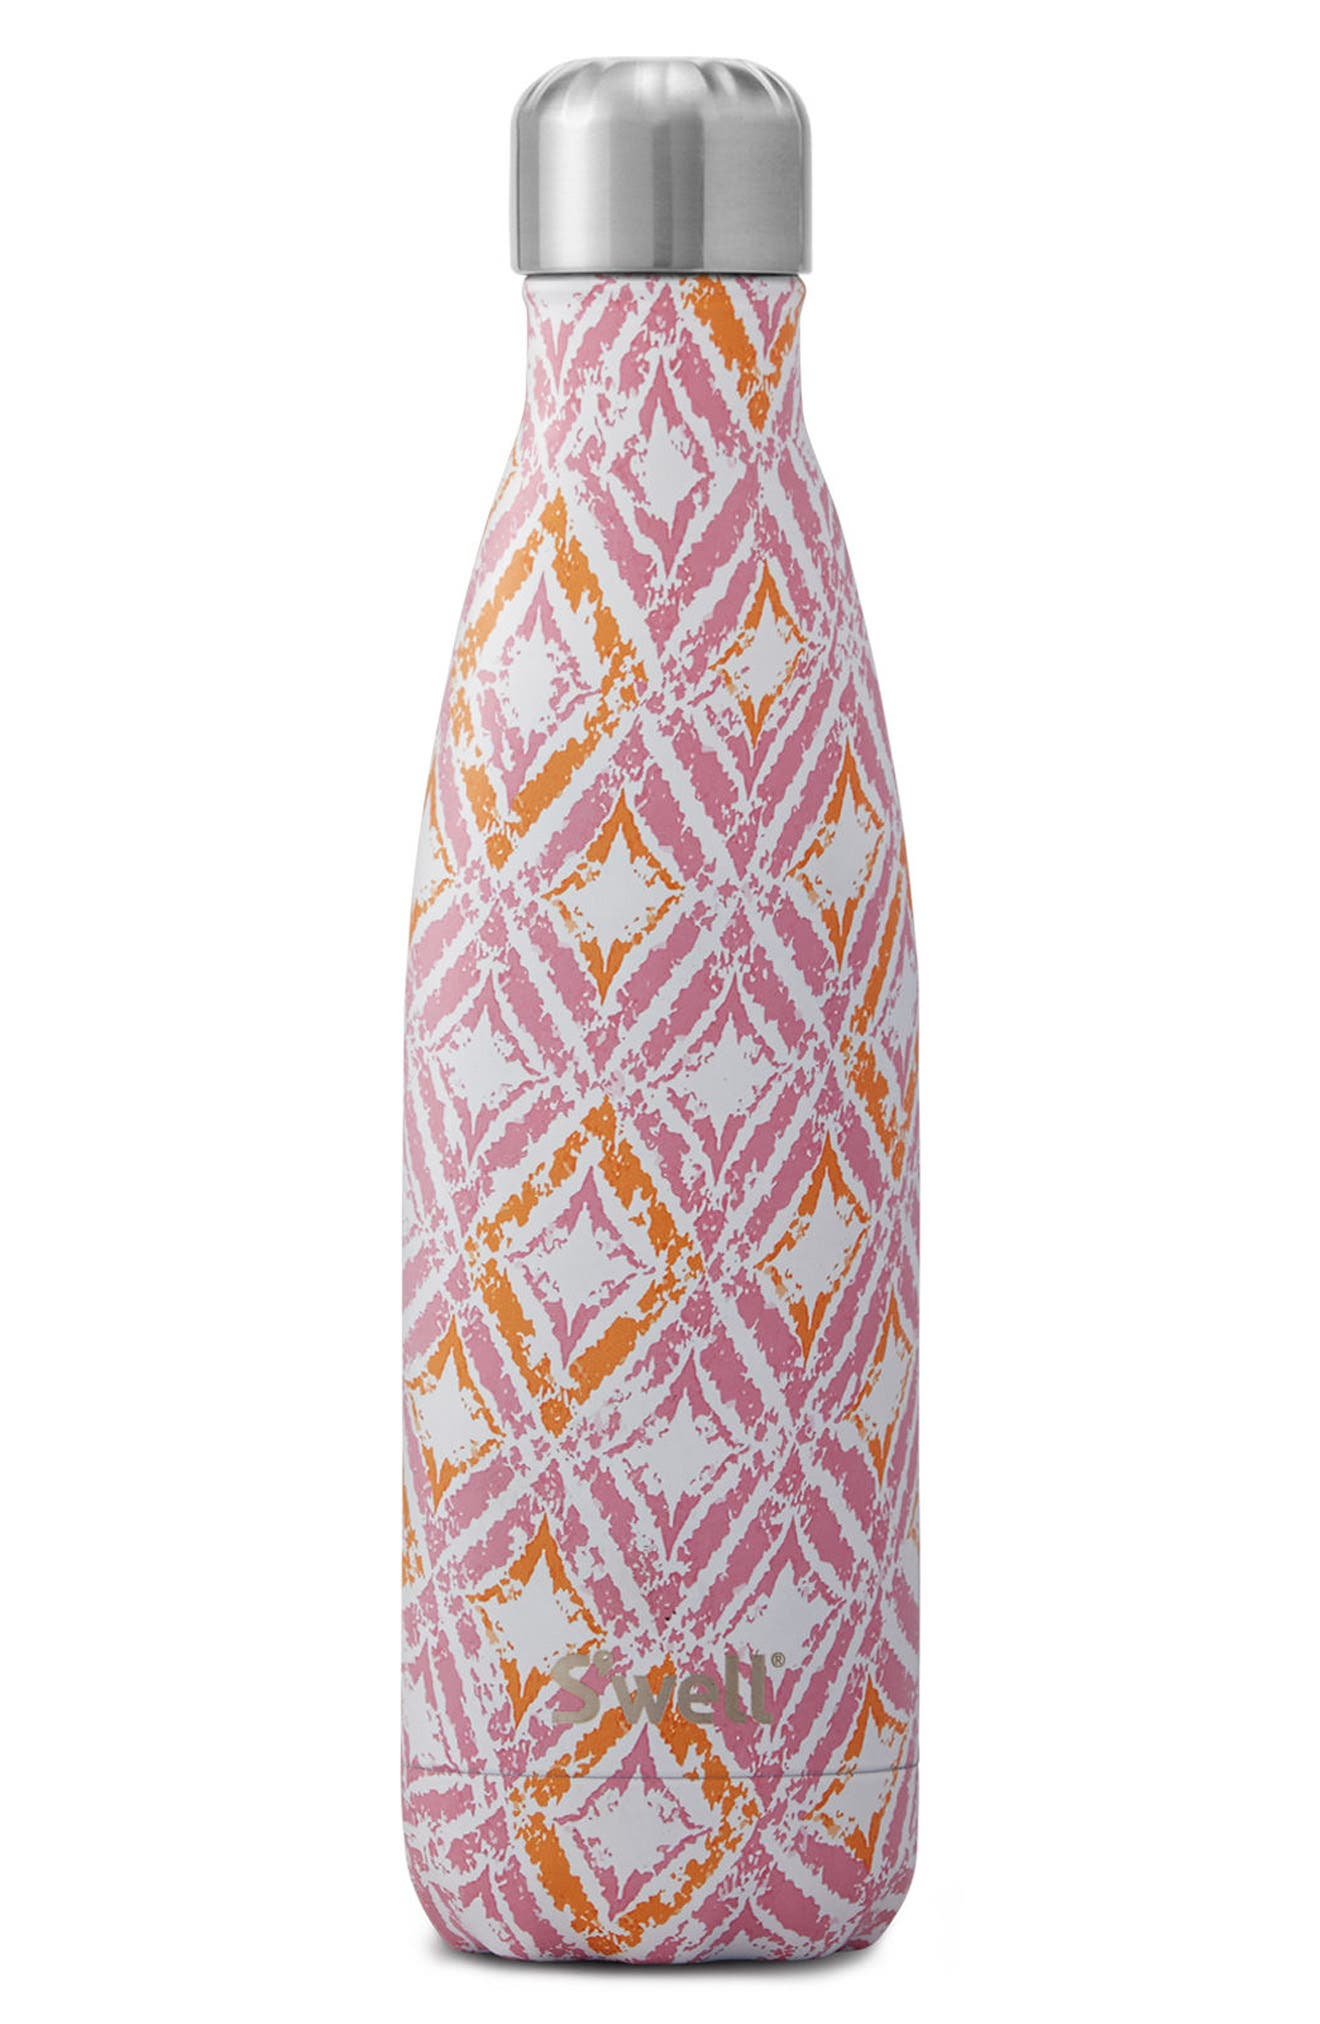 Odisha Insulated Stainless Steel Water Bottle,                         Main,                         color, 650